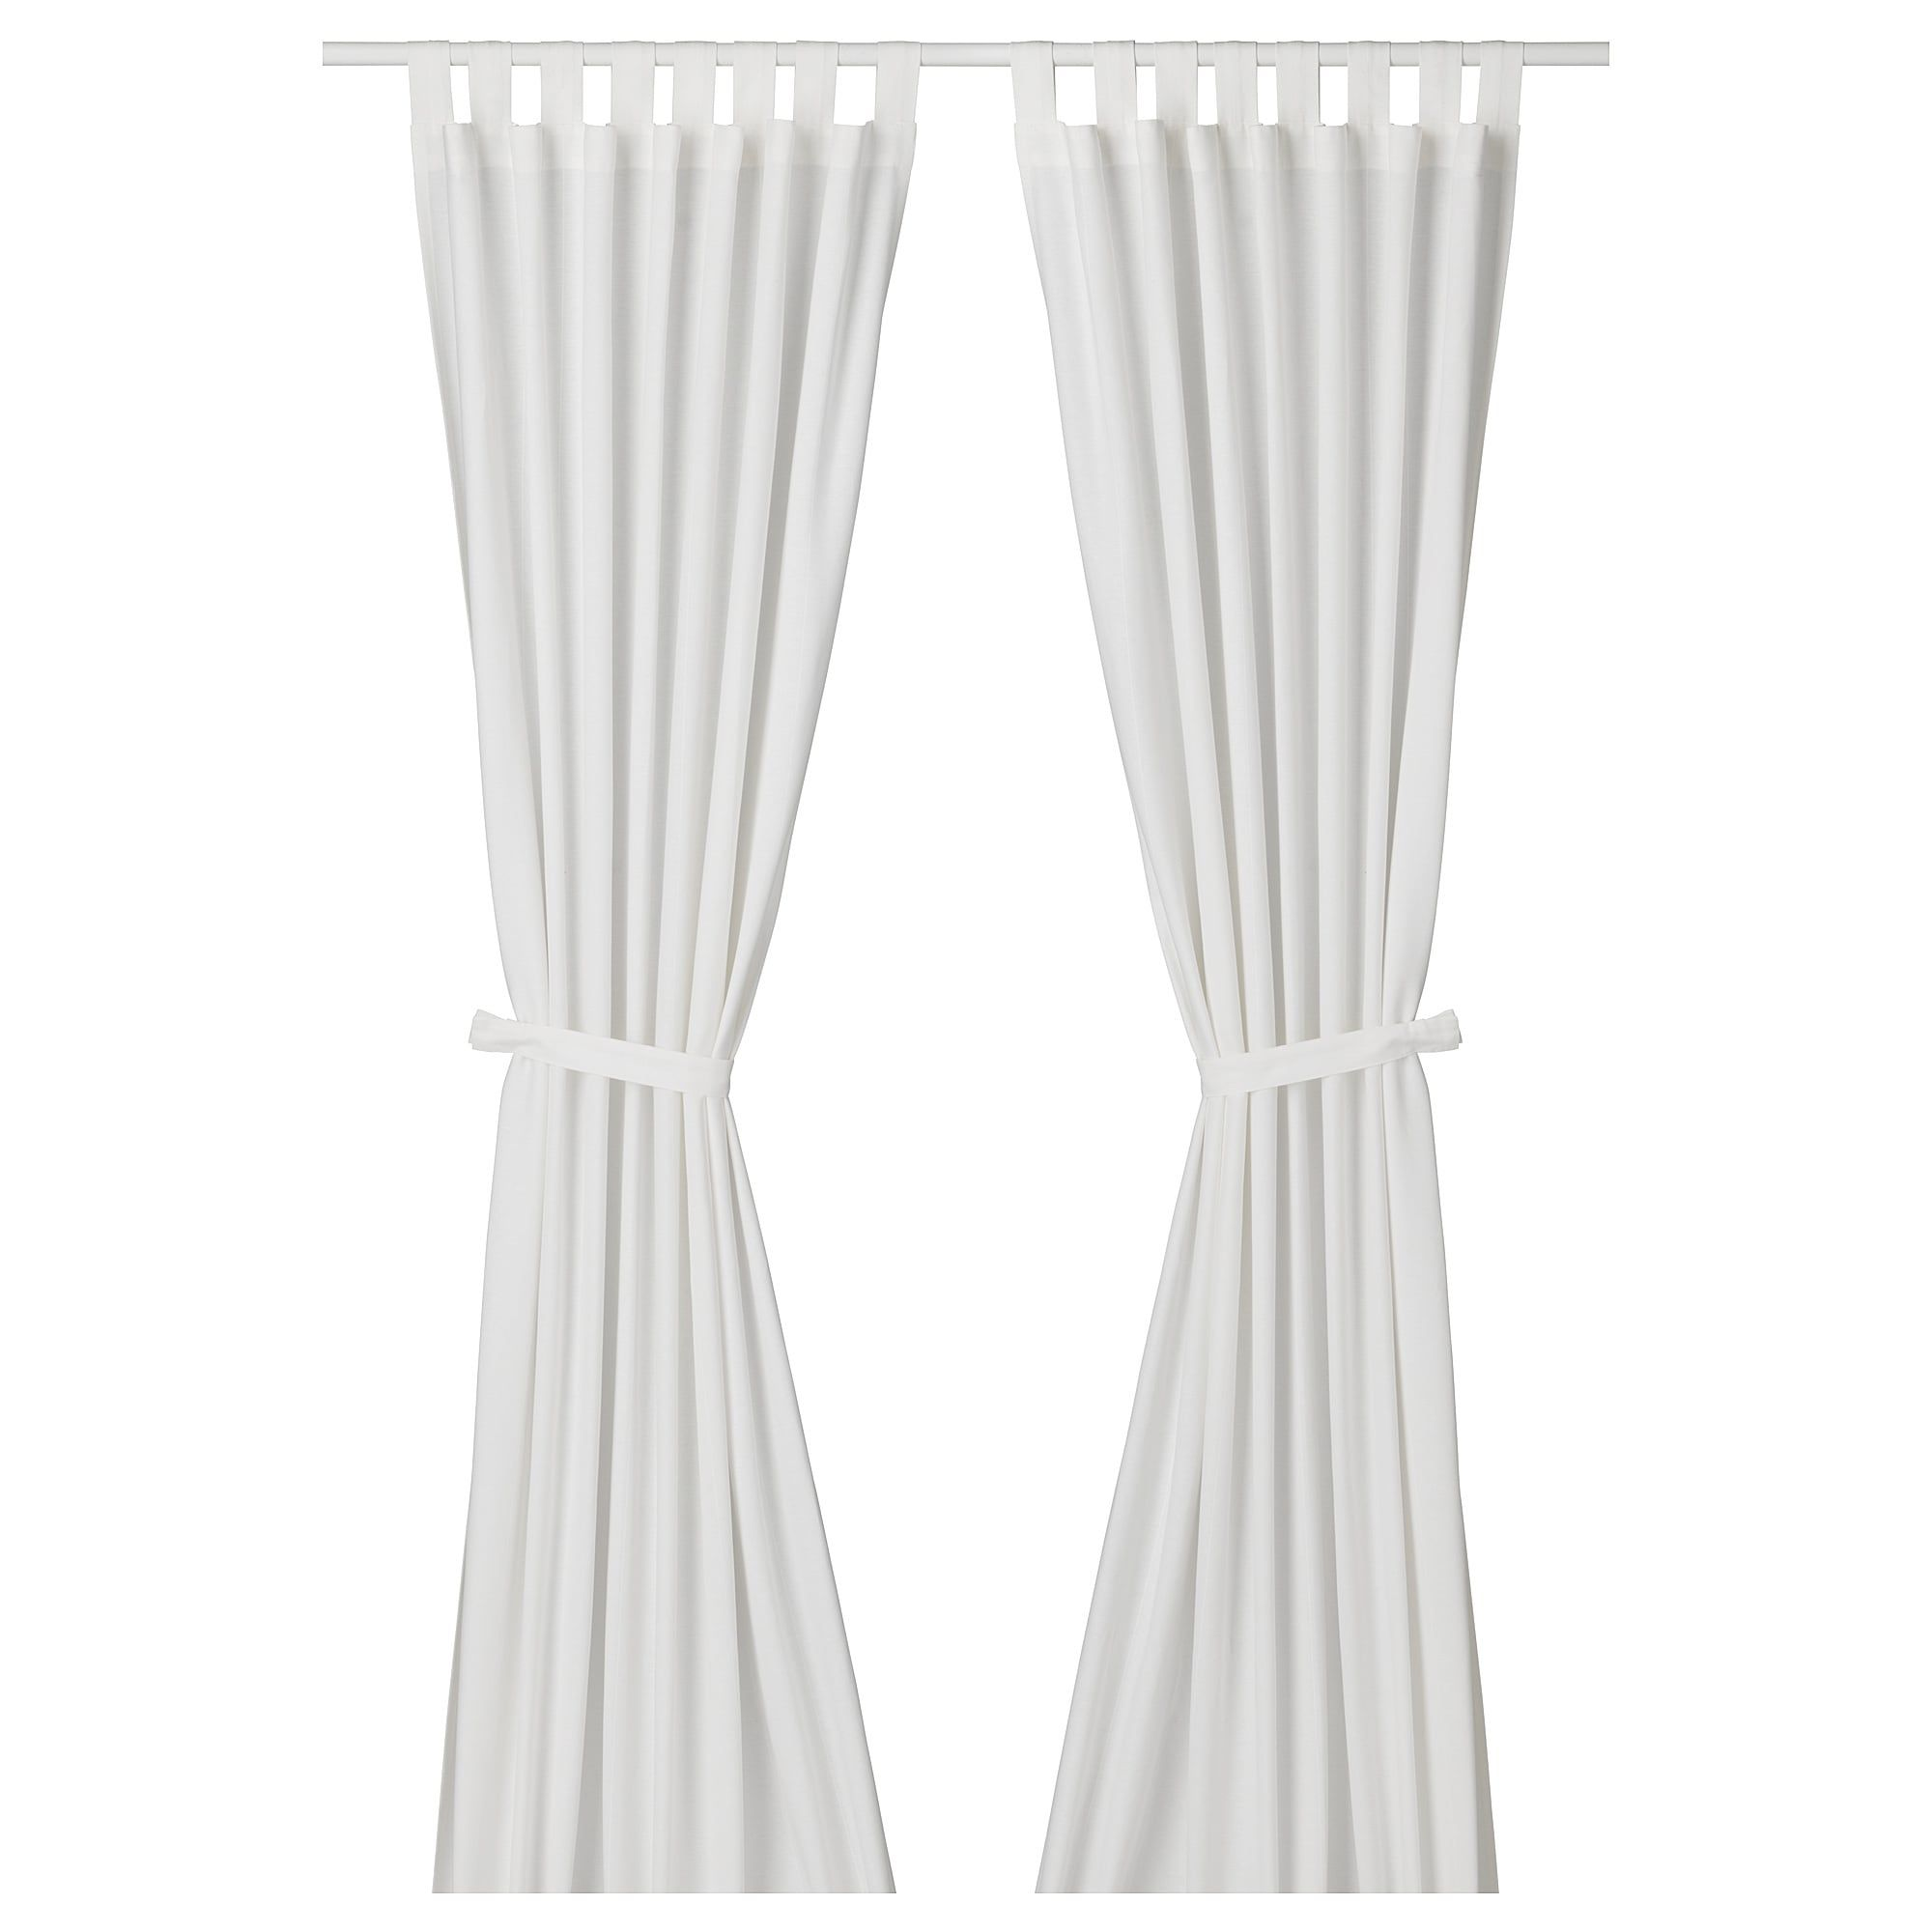 Ikea Lenda Bleached White Curtains With Tie Backs 1 Pair Room